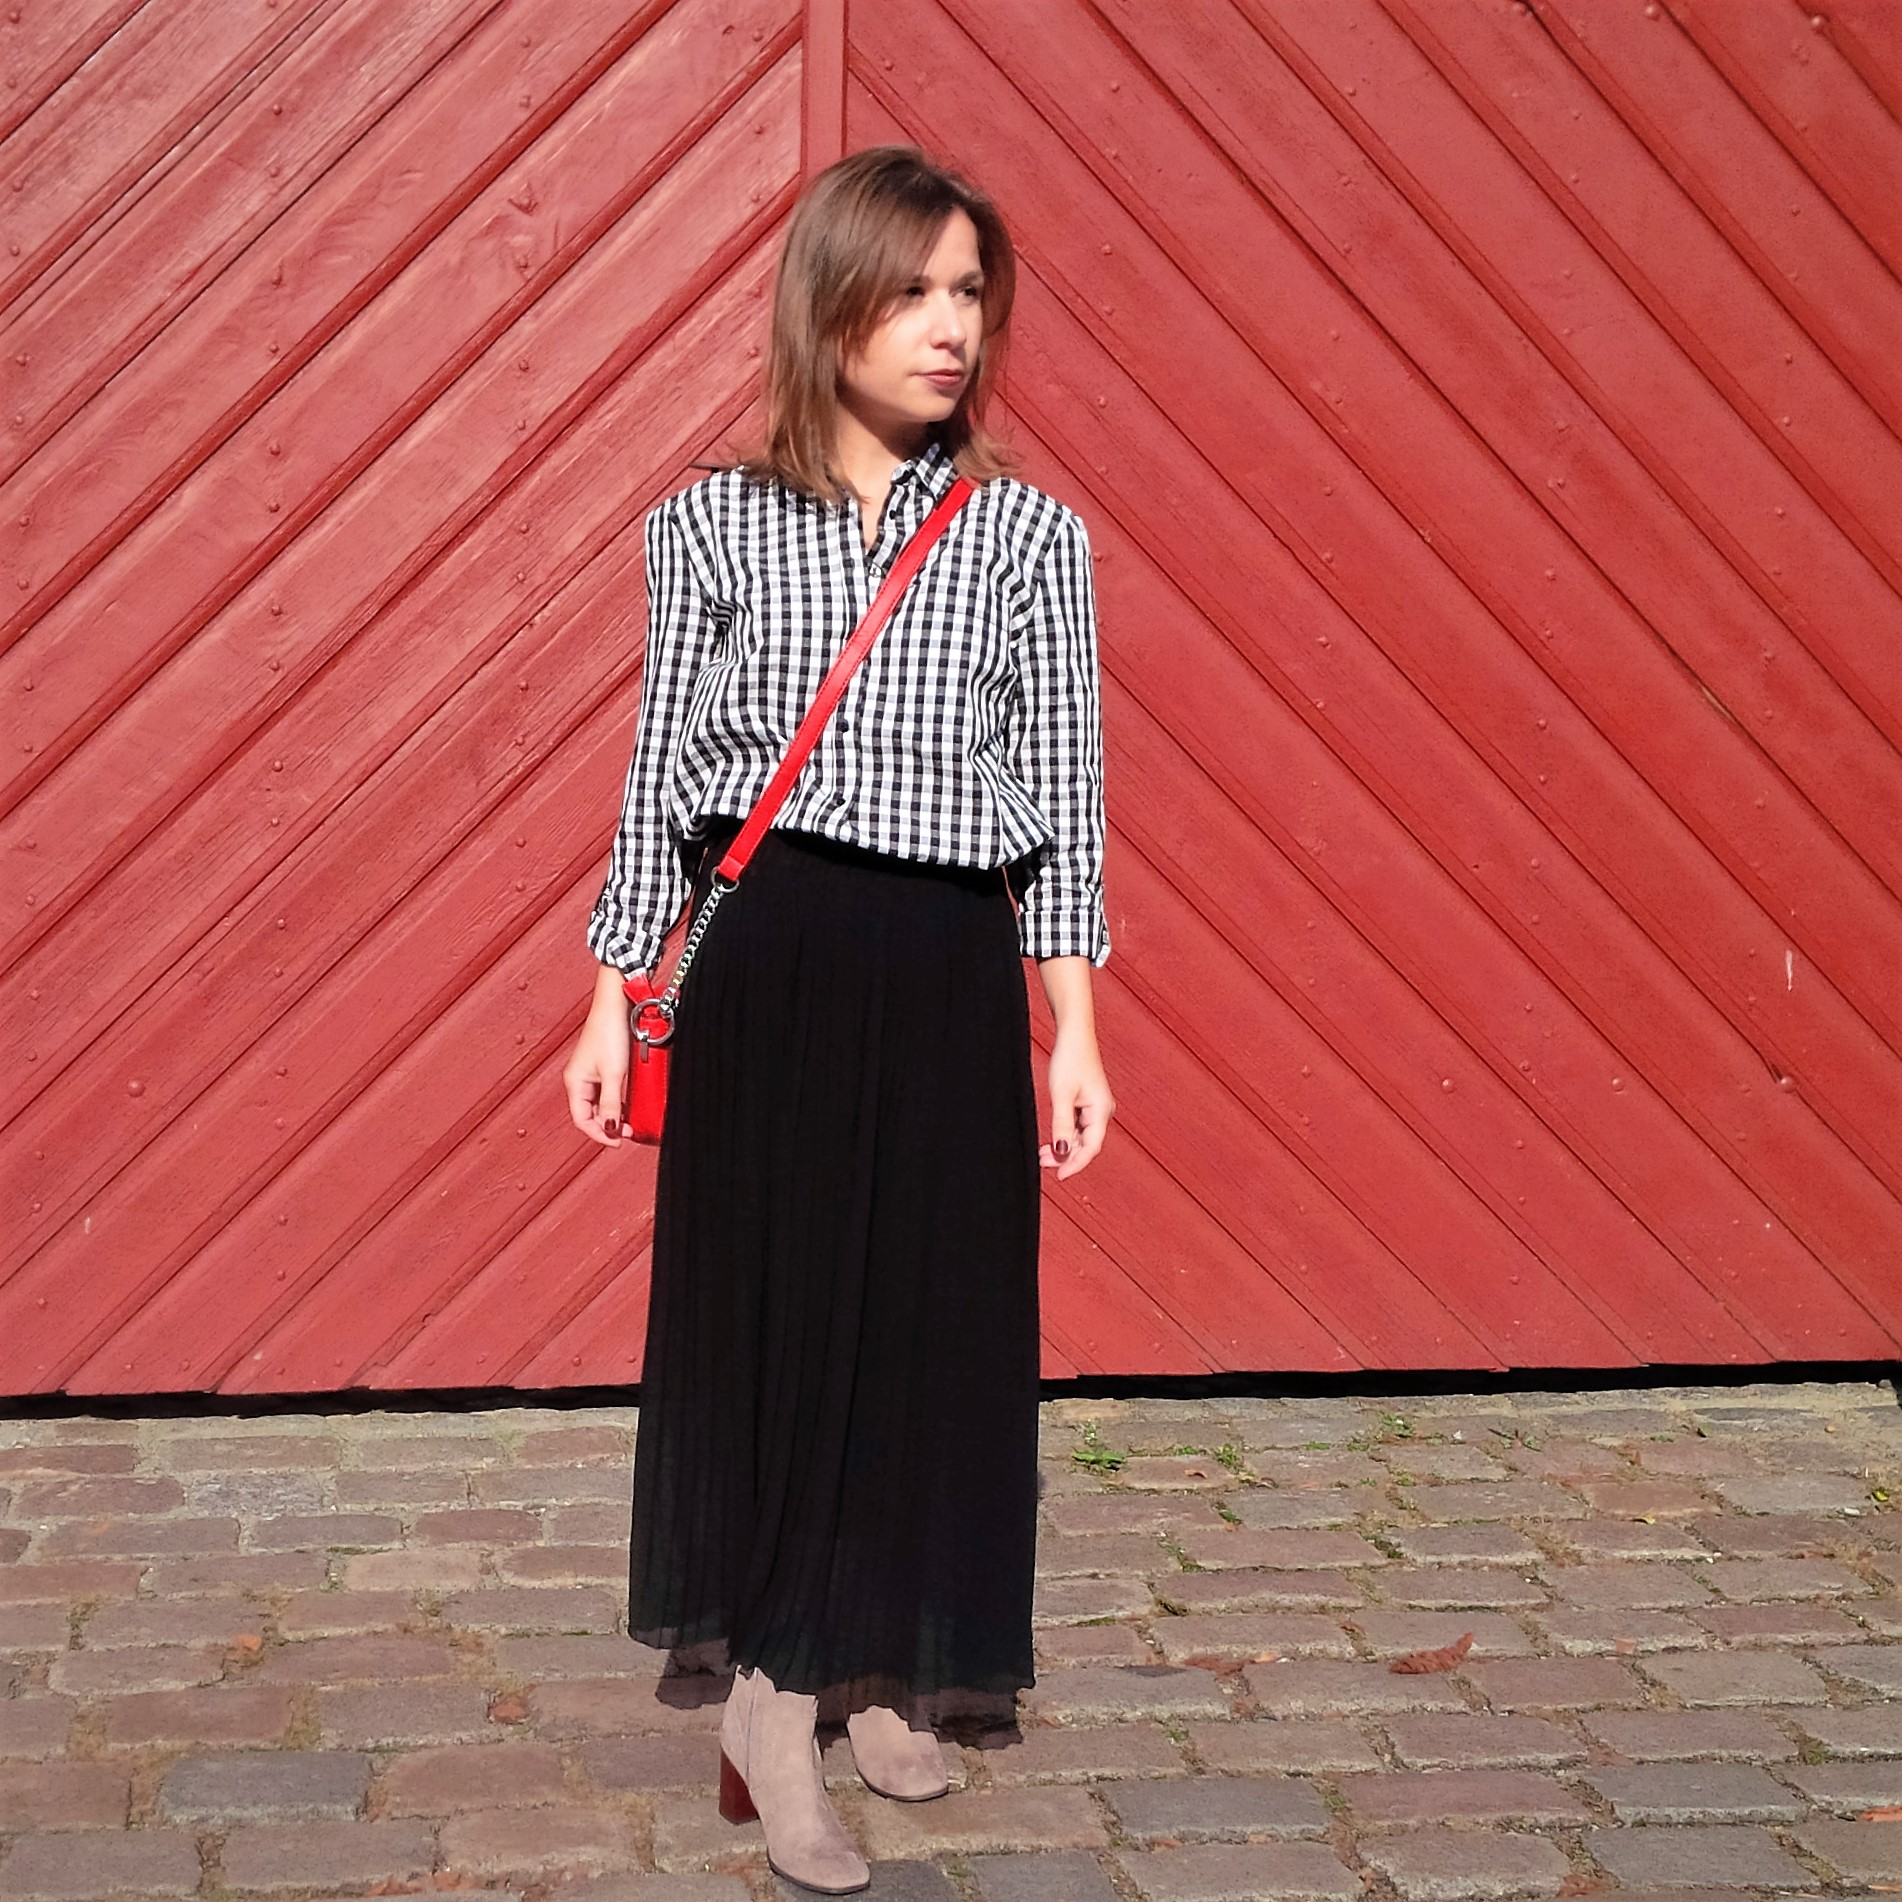 how-to-mix-match-affordable-trend-pieces-and-never-look-cheap-liebe-was-ist-fashion-advice-fall-lookbook-9